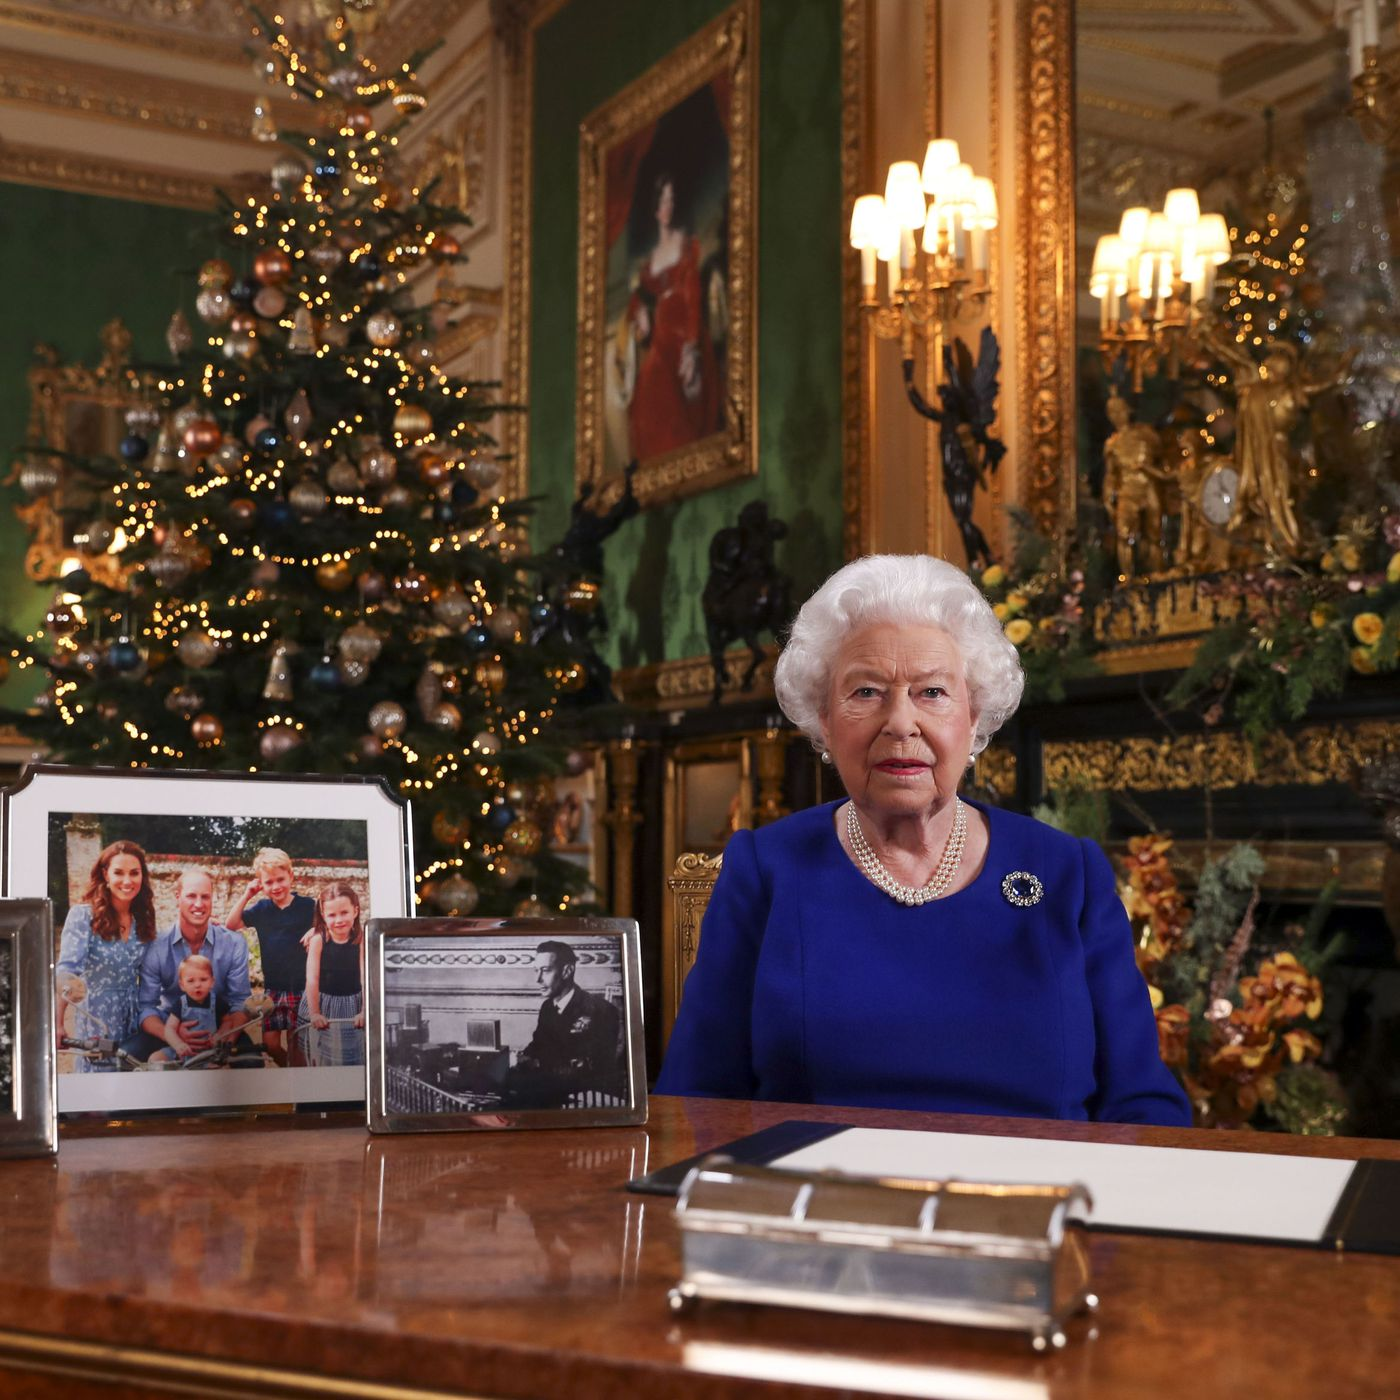 Queen Elizabeth Christmas Message 2020 Queen Elizabeth's Christmas speech may have contained a Brexit